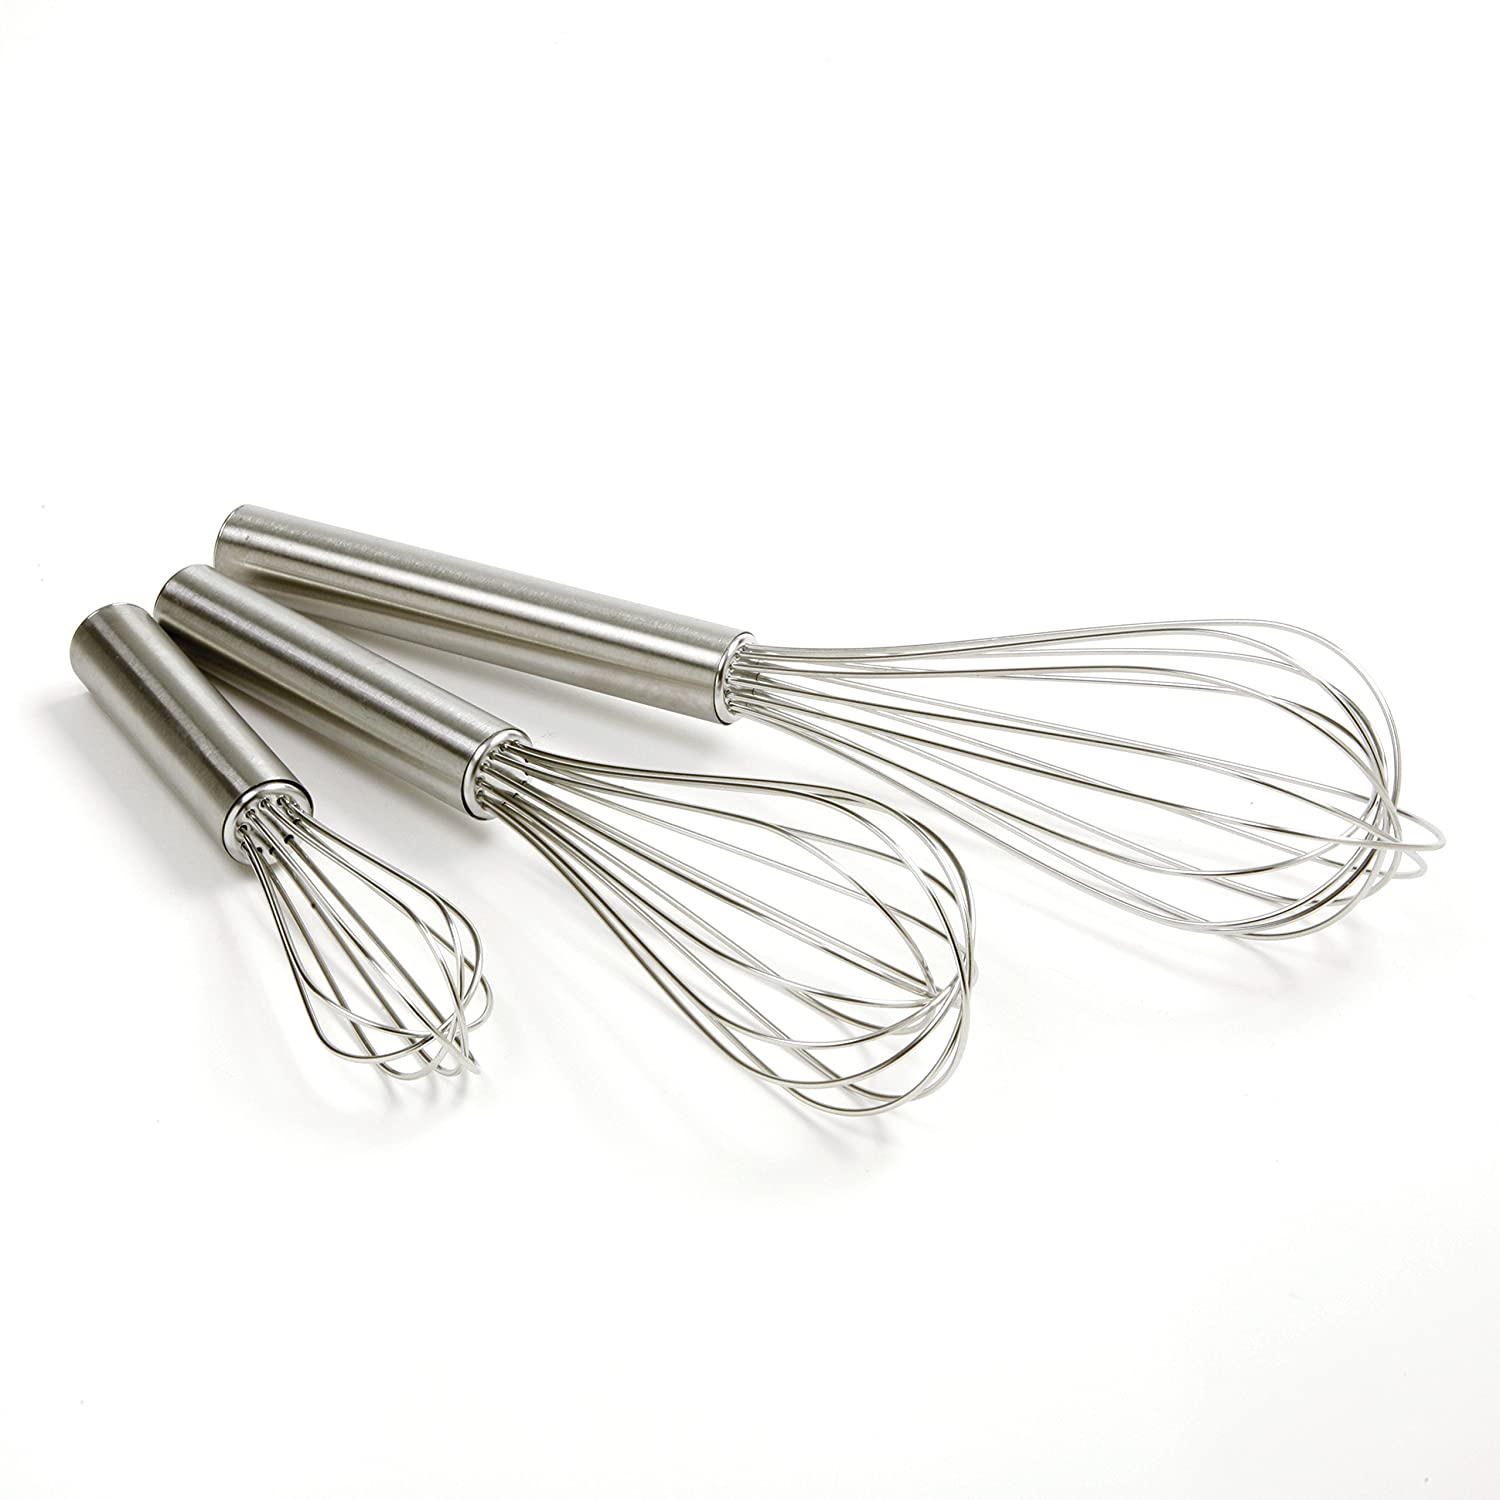 Amazon.com: Norpro Balloon Wire Whisk Set of 3 Stainless Steel Stir ...